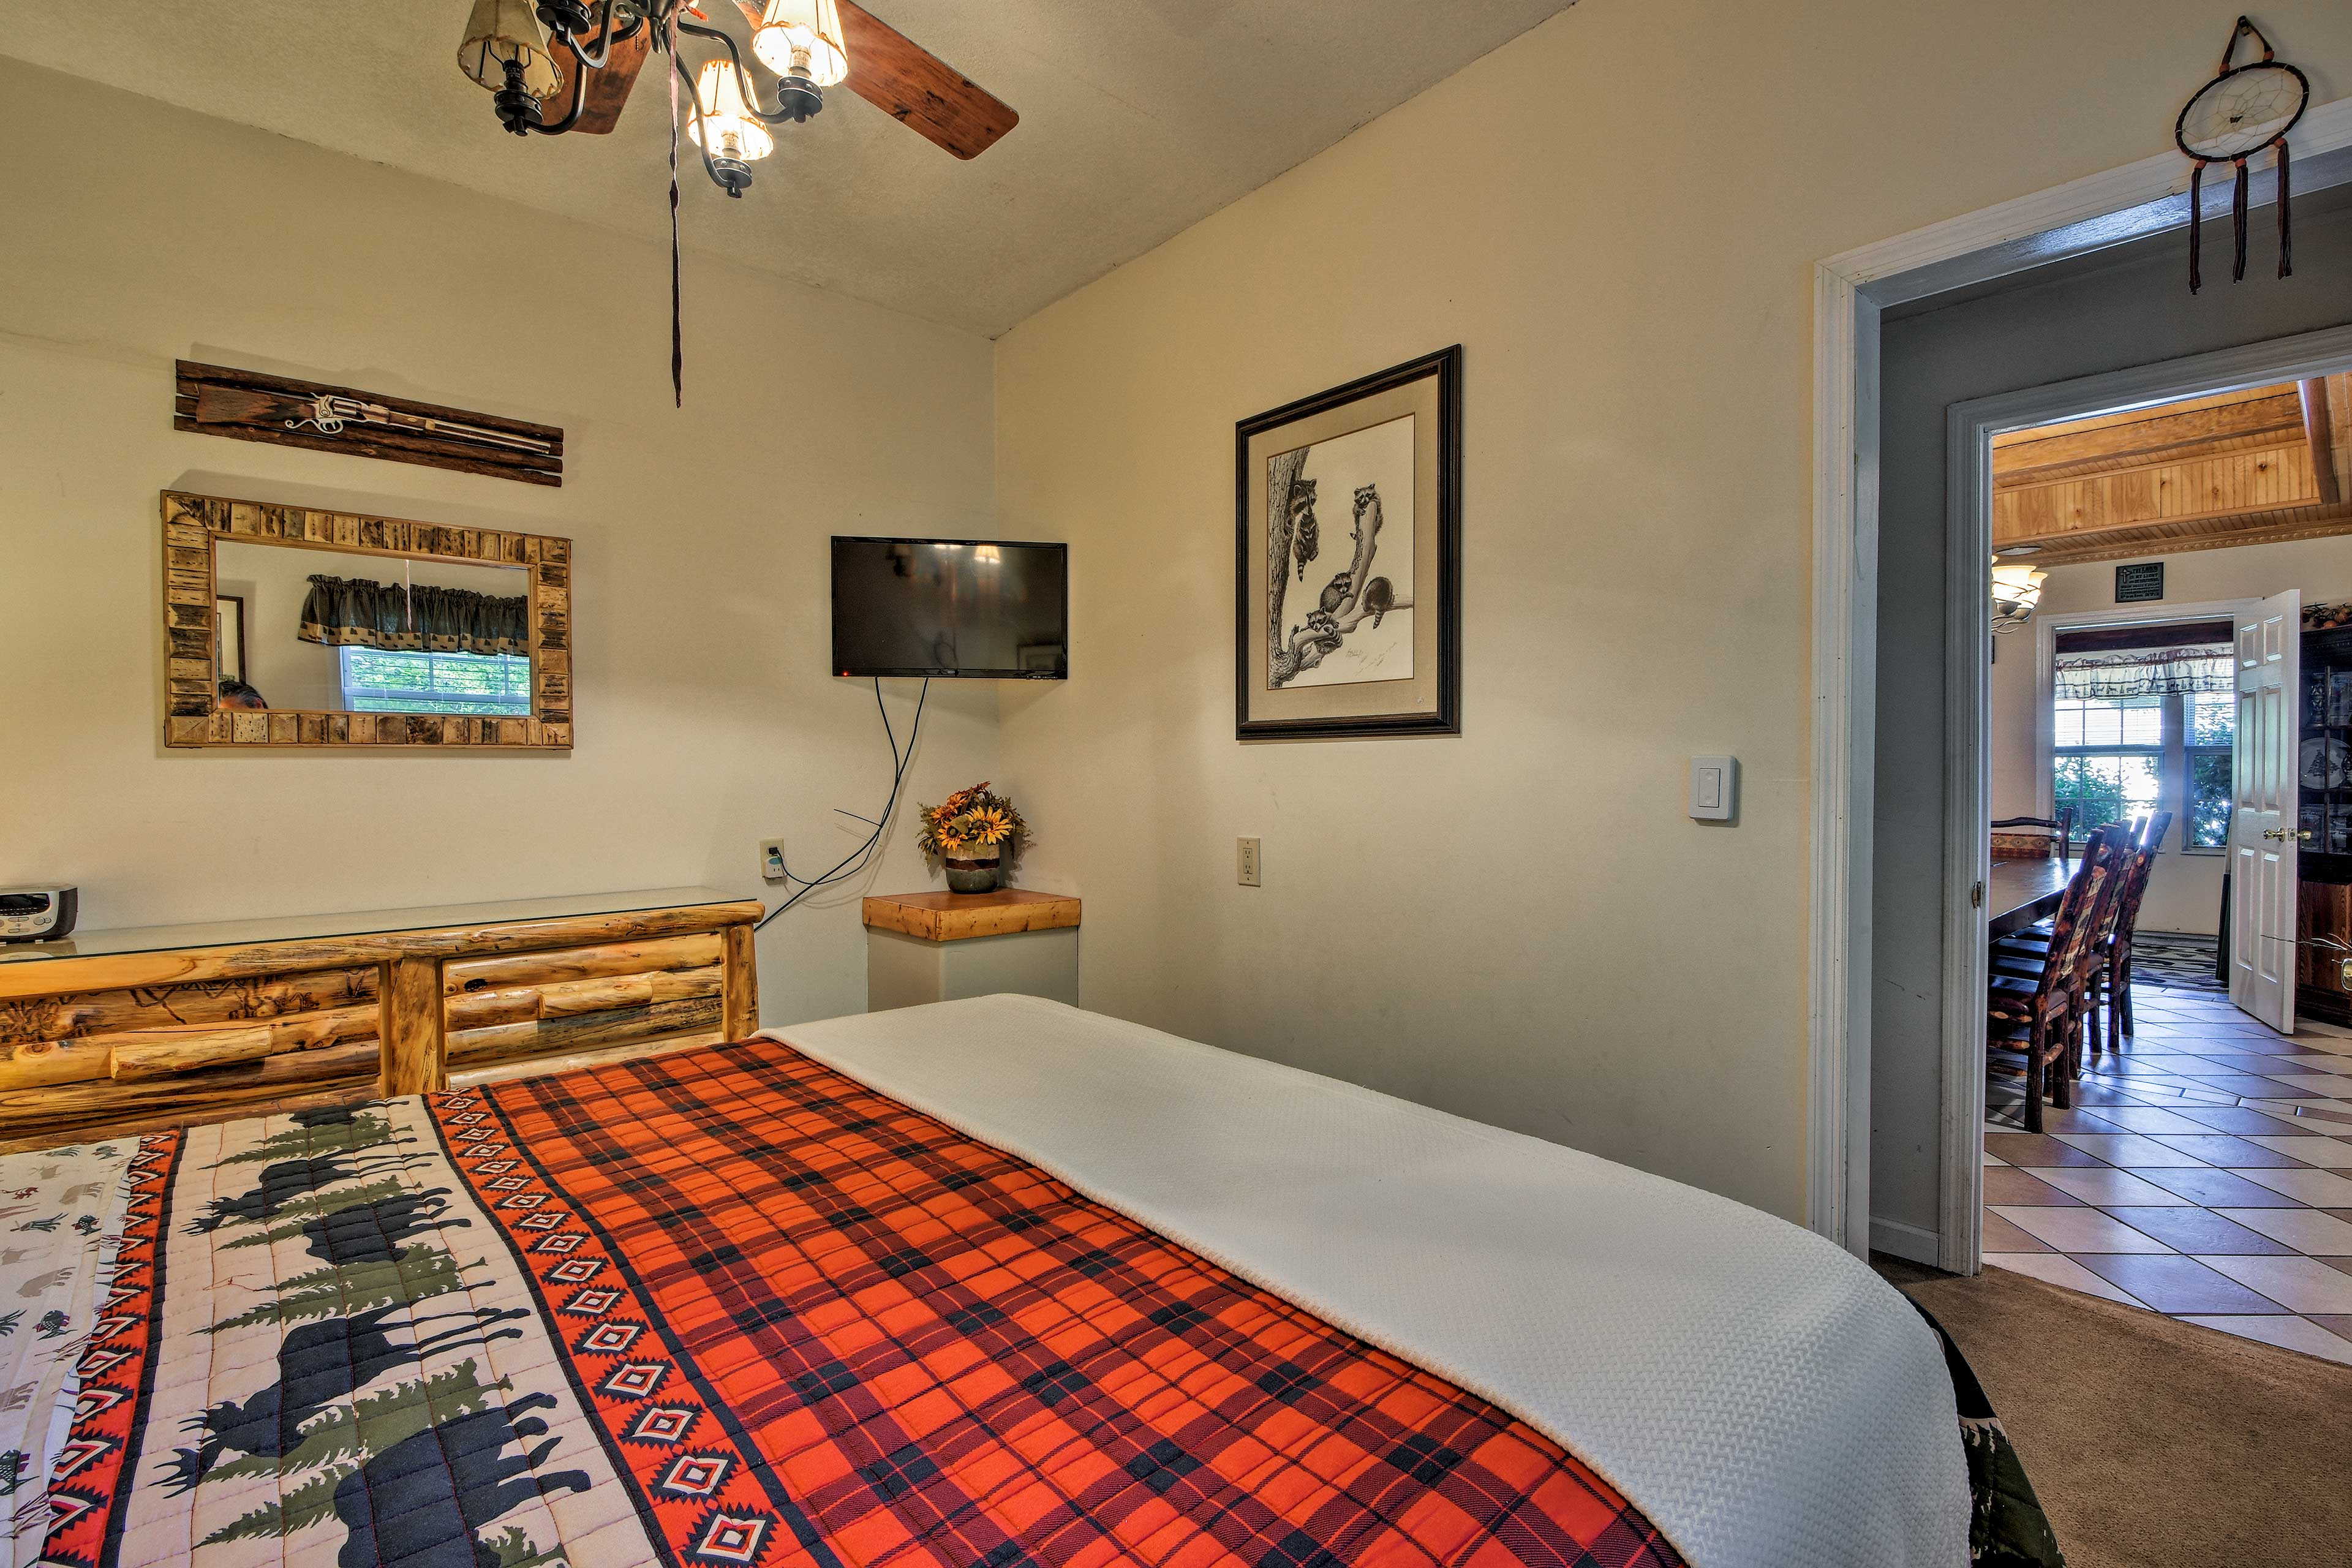 A ceiling fan and flat-screen TV are additional bedroom highlights.